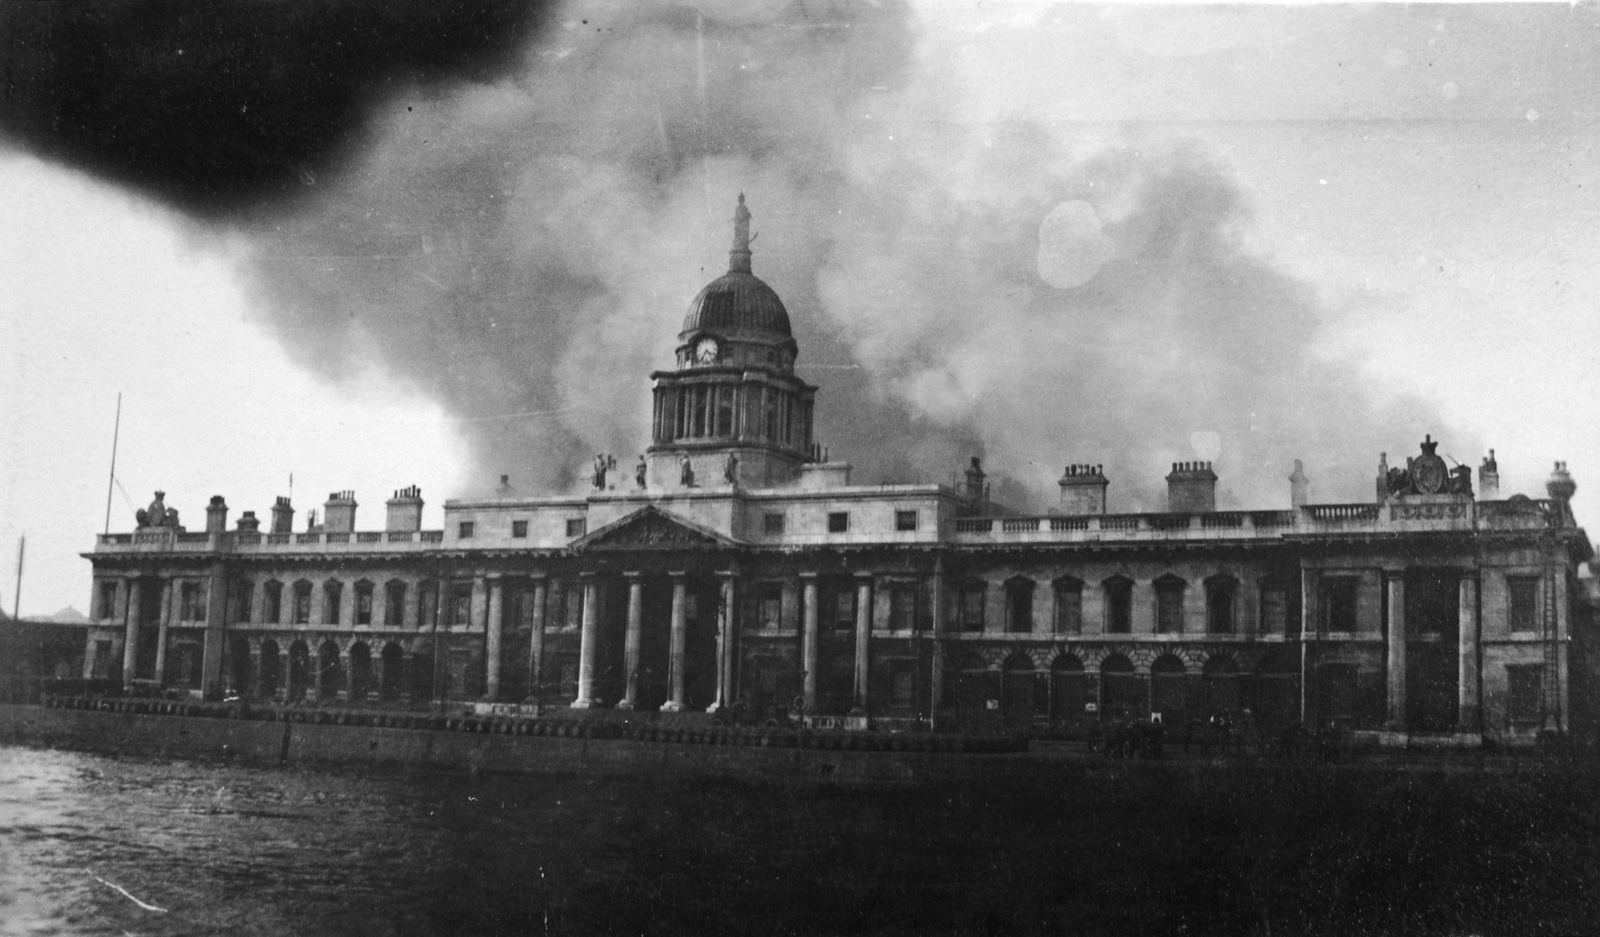 Image - The Custom House as the flames took hold. Credit: Getty Images.